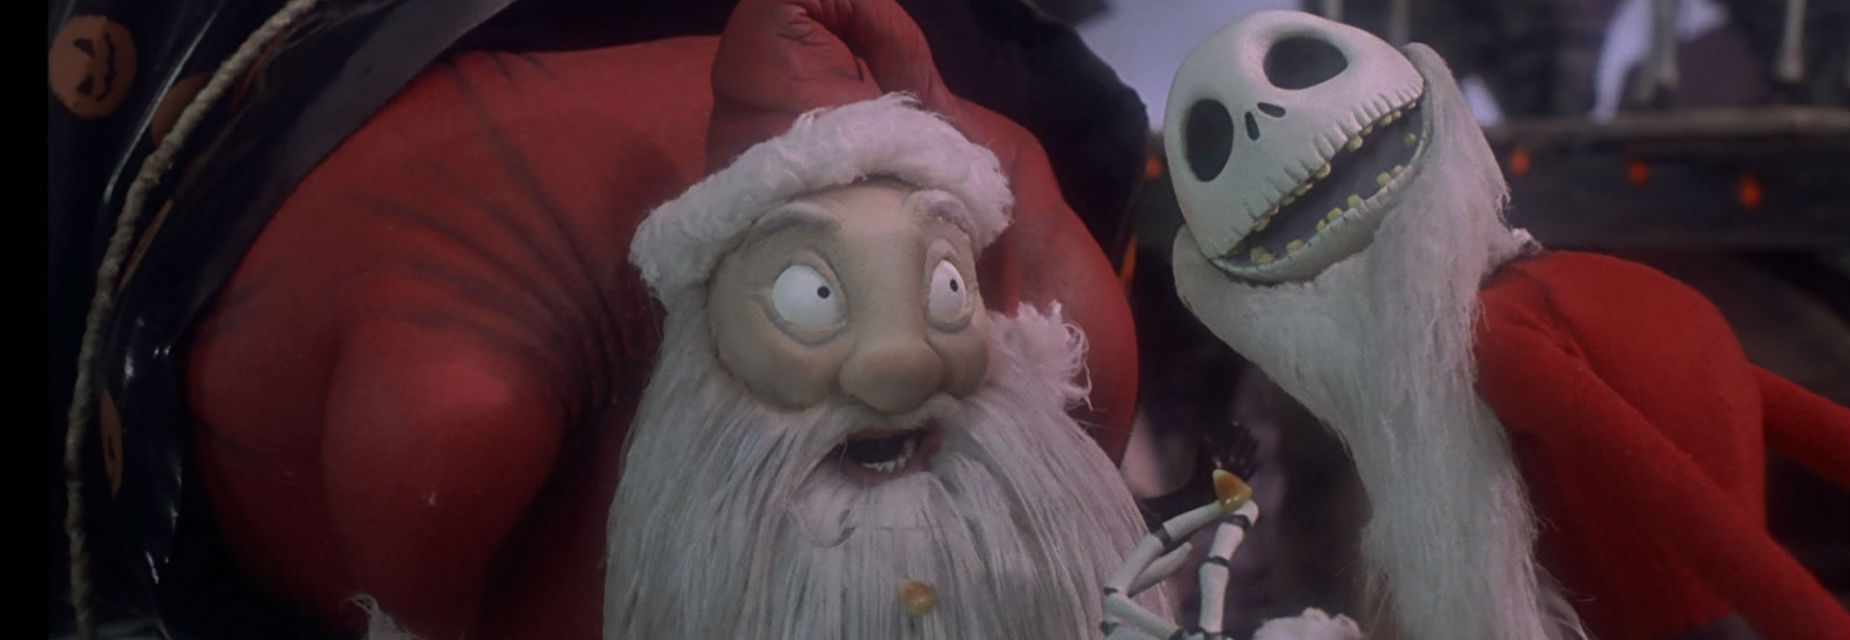 Sandy Claus and Jack Skellington